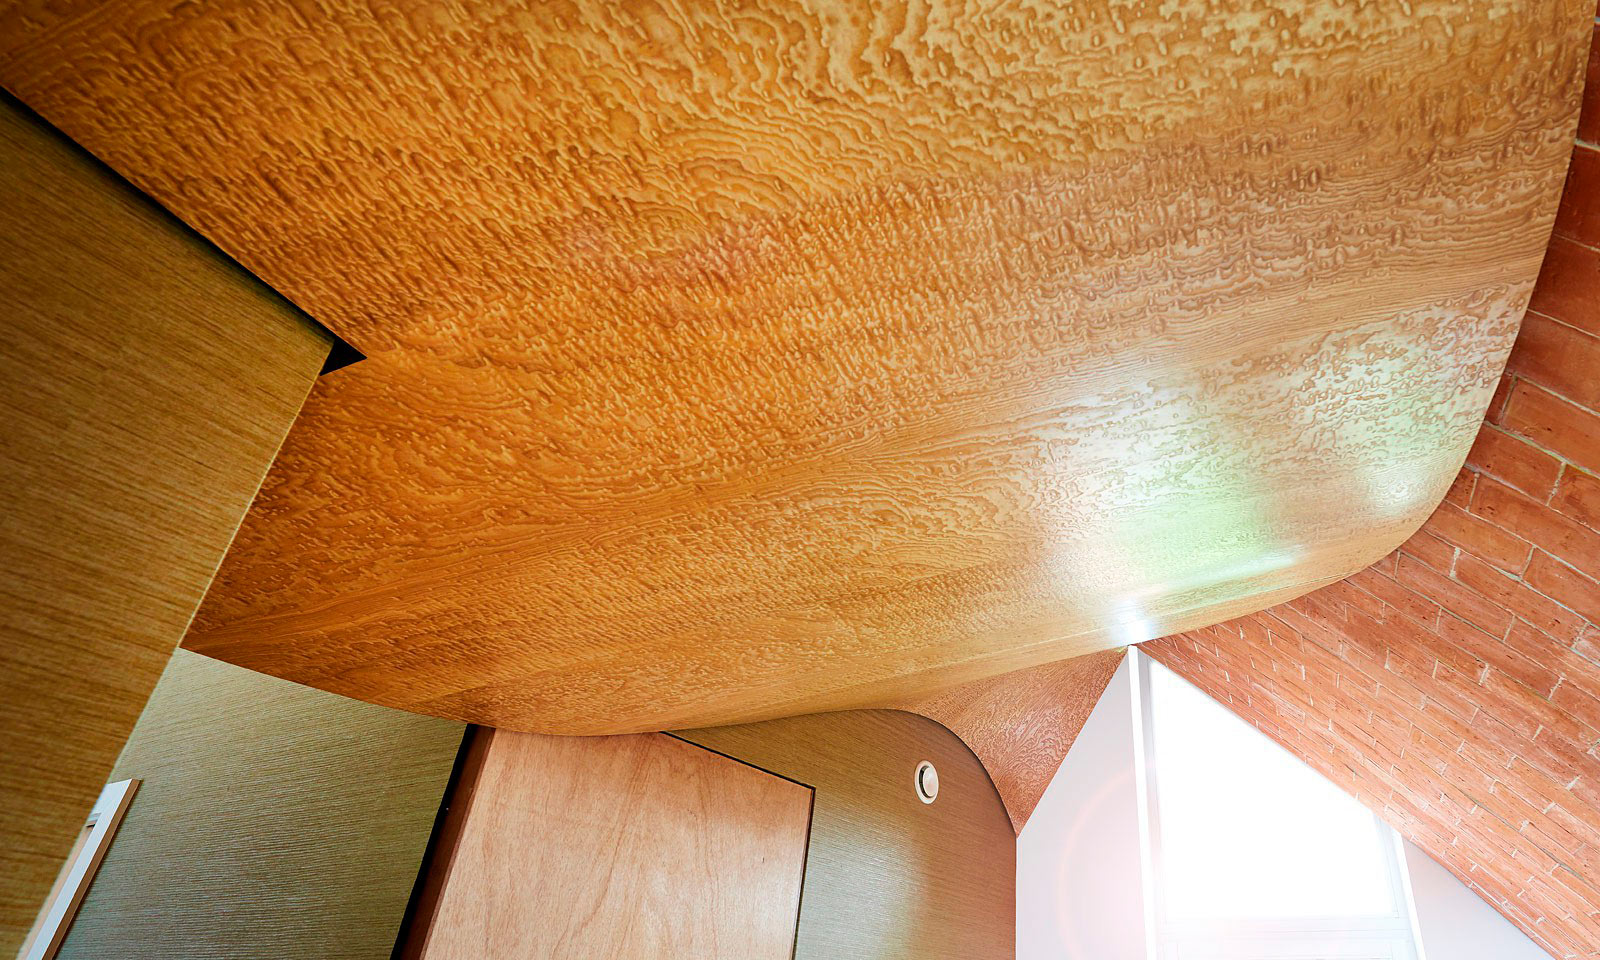 Verity's ceiling. A bespoke hand-crafted, timber ceiling, designed for Crossway, Hawkes Architect's para 55 eco-house. Featured on Grand Designs this unique stucture was manufactured from veneered Japanese birds eye ash and installed by the skilled joiners from Mounts Hill Woodcraf